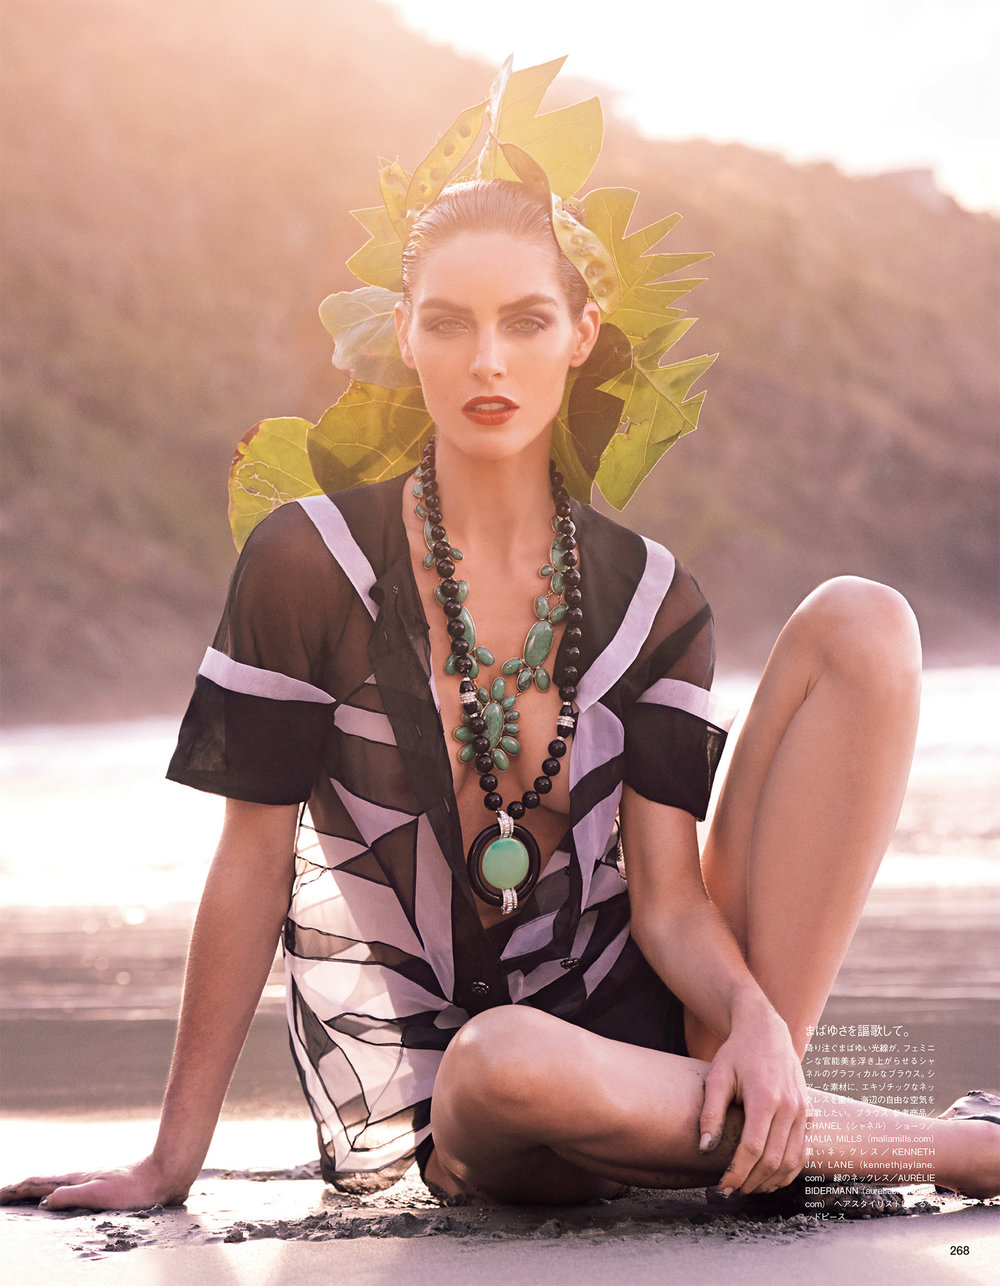 Giovanna-Battaglia-Vogue-Japan-Mariano-Vivanco-Forbidden-Paradise-10.jpg